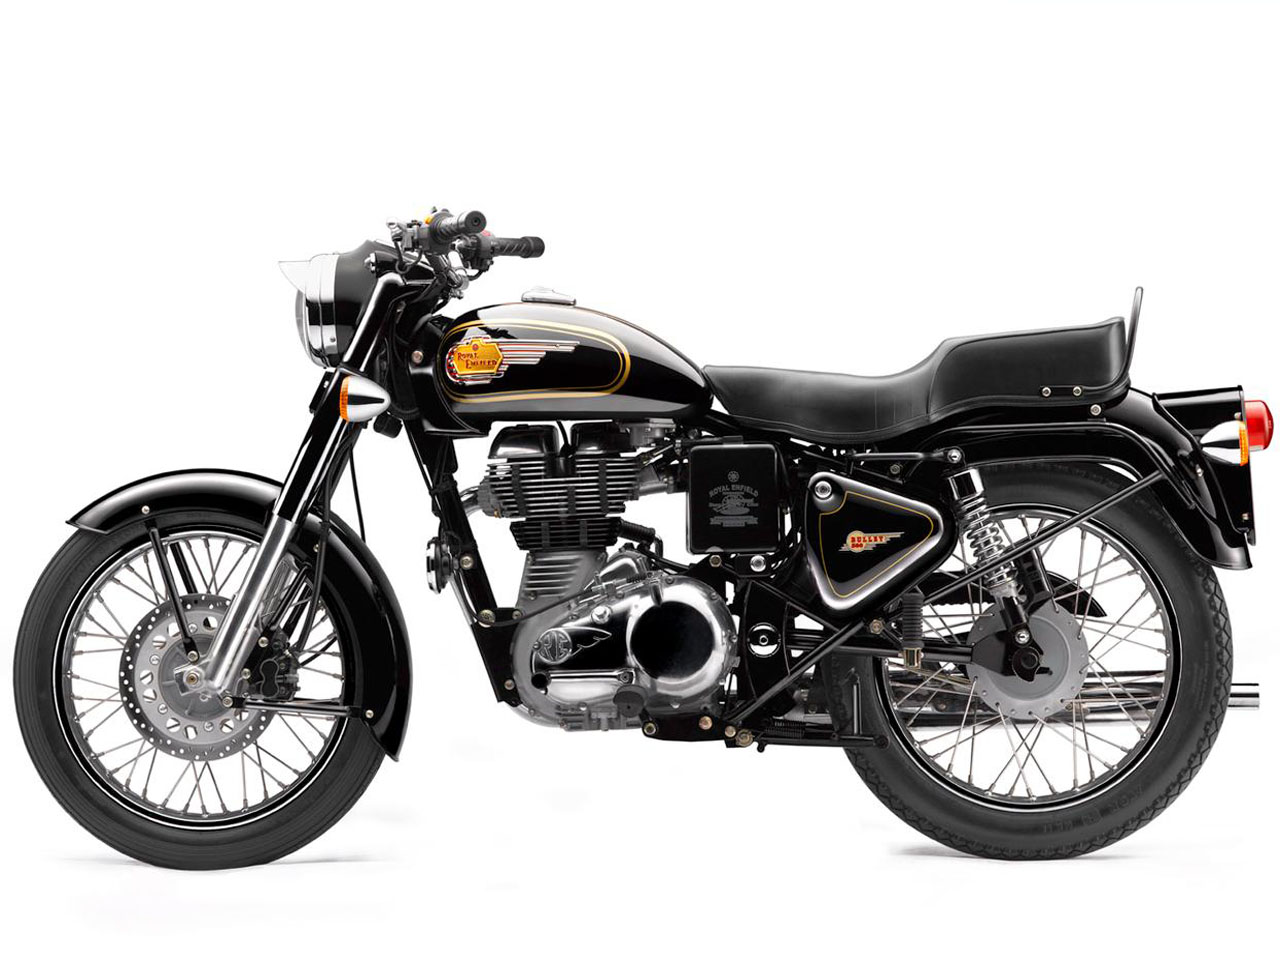 Royal enfield bullett photo - 5